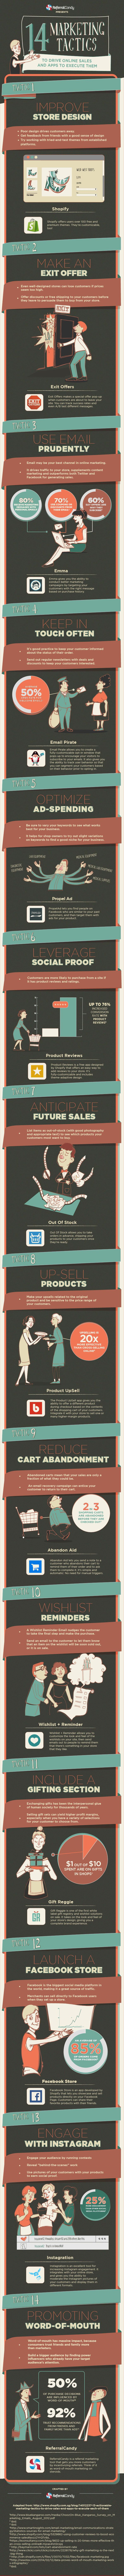 Are you using the right marketing tactics to drive online sales for your business? This infographic provides you with he information you need.